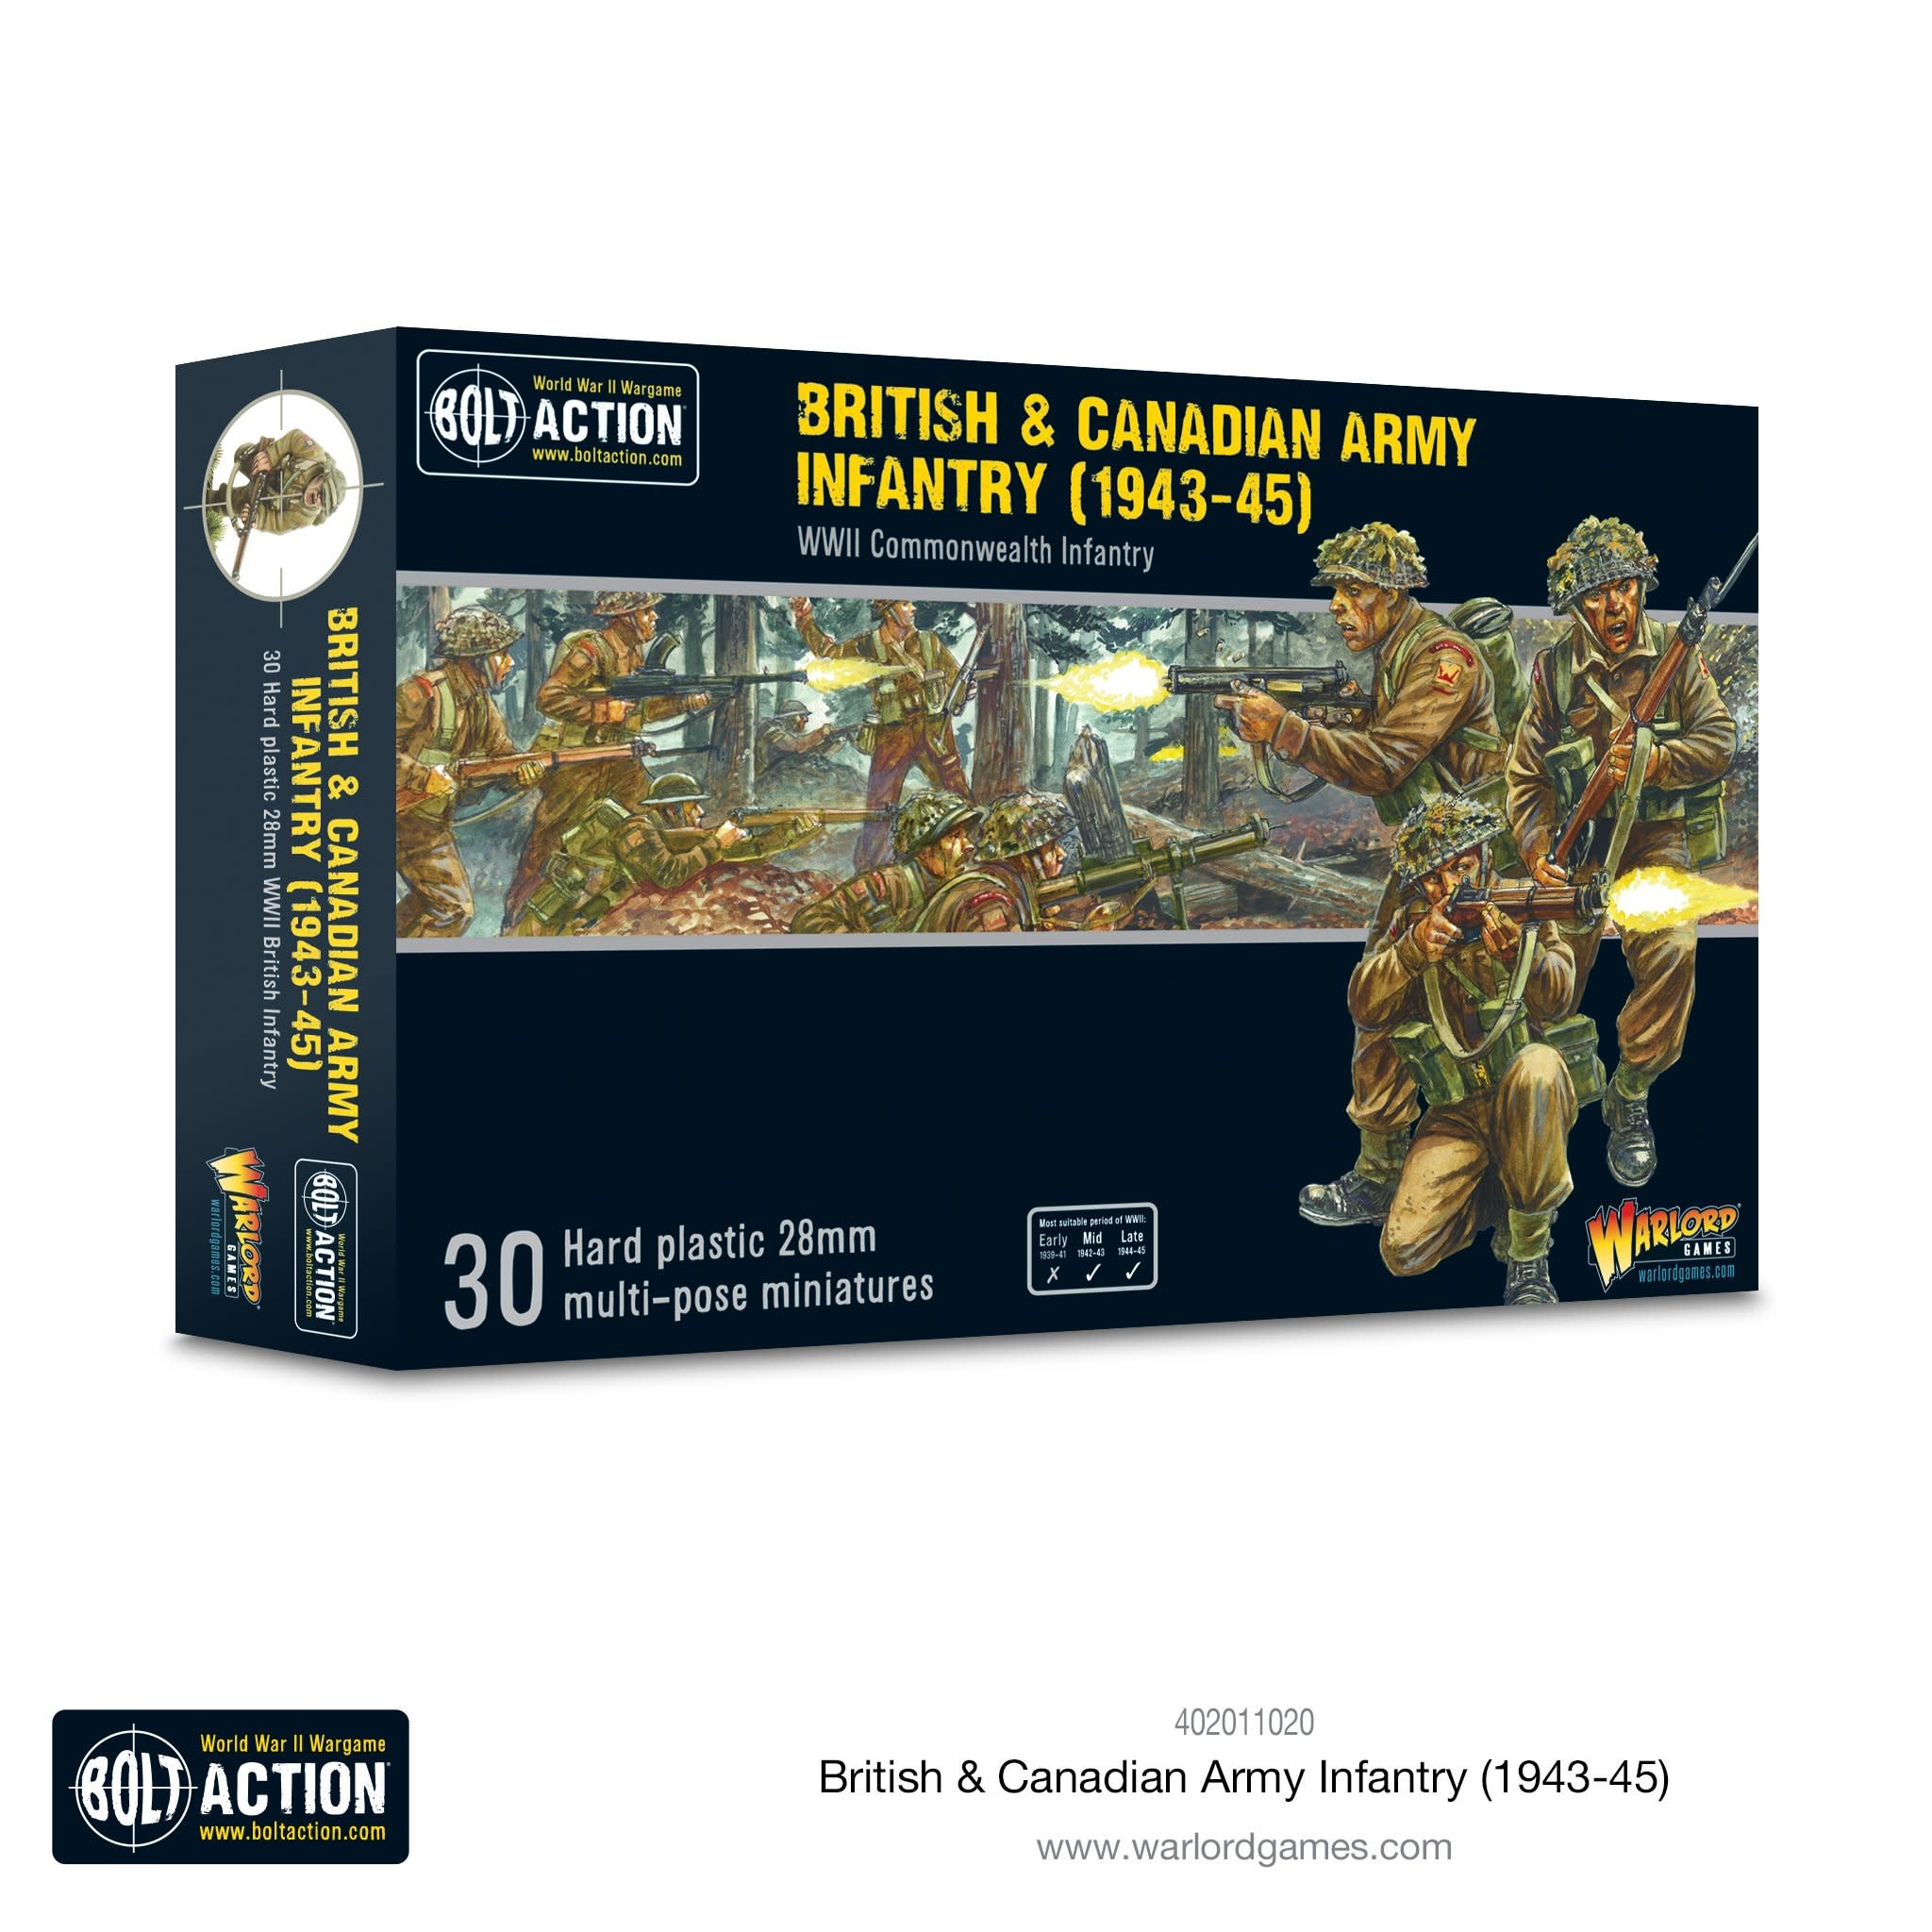 Warlord games Bolt Action: British & Canadian Army Infantry (1943-45)